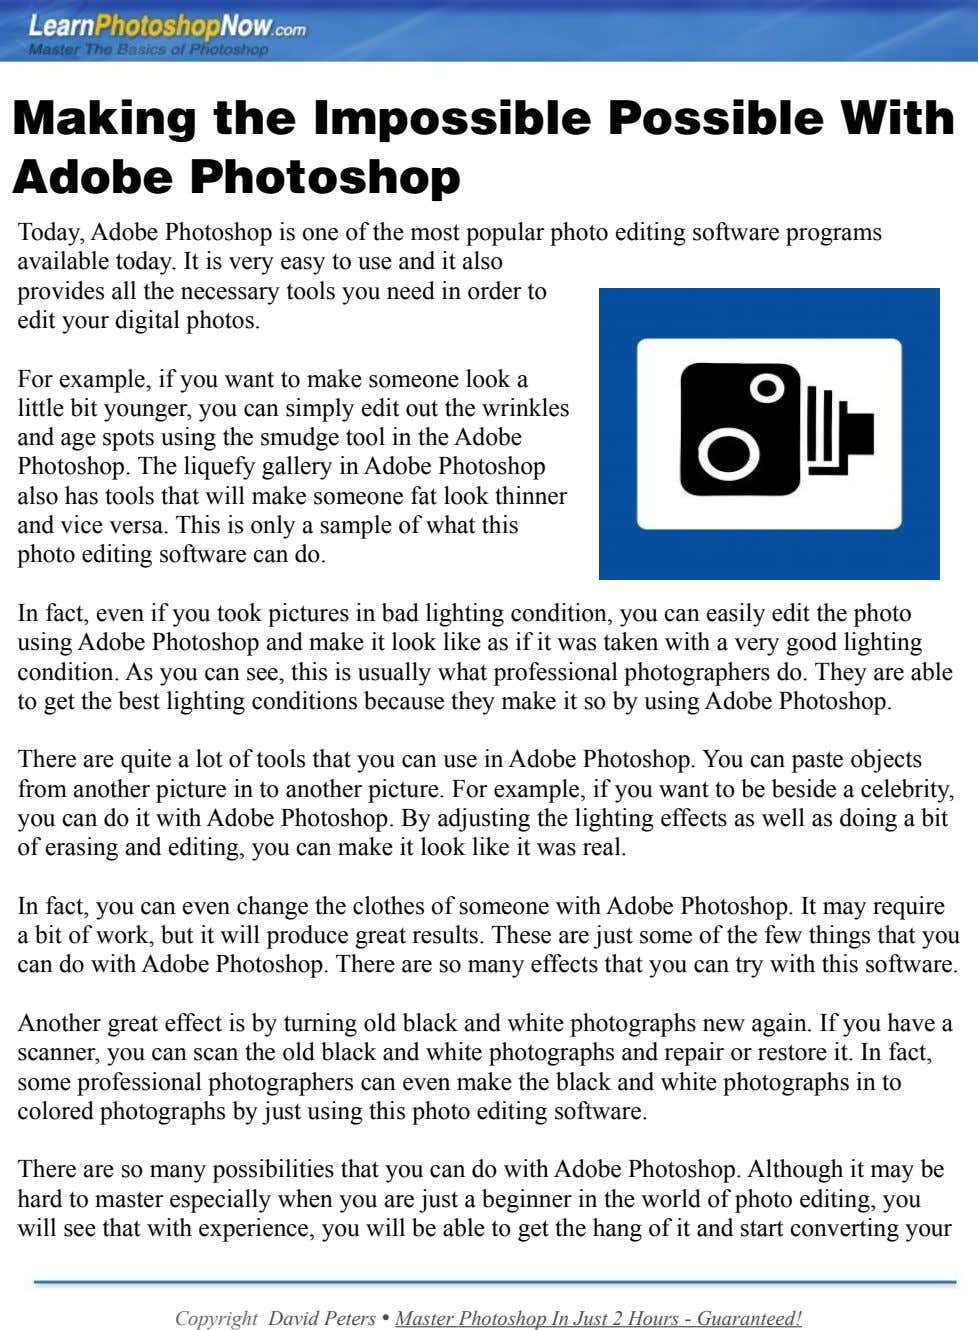 Making the Impossible Possible With Adobe Photoshop Today, Adobe Photoshop is one of the most